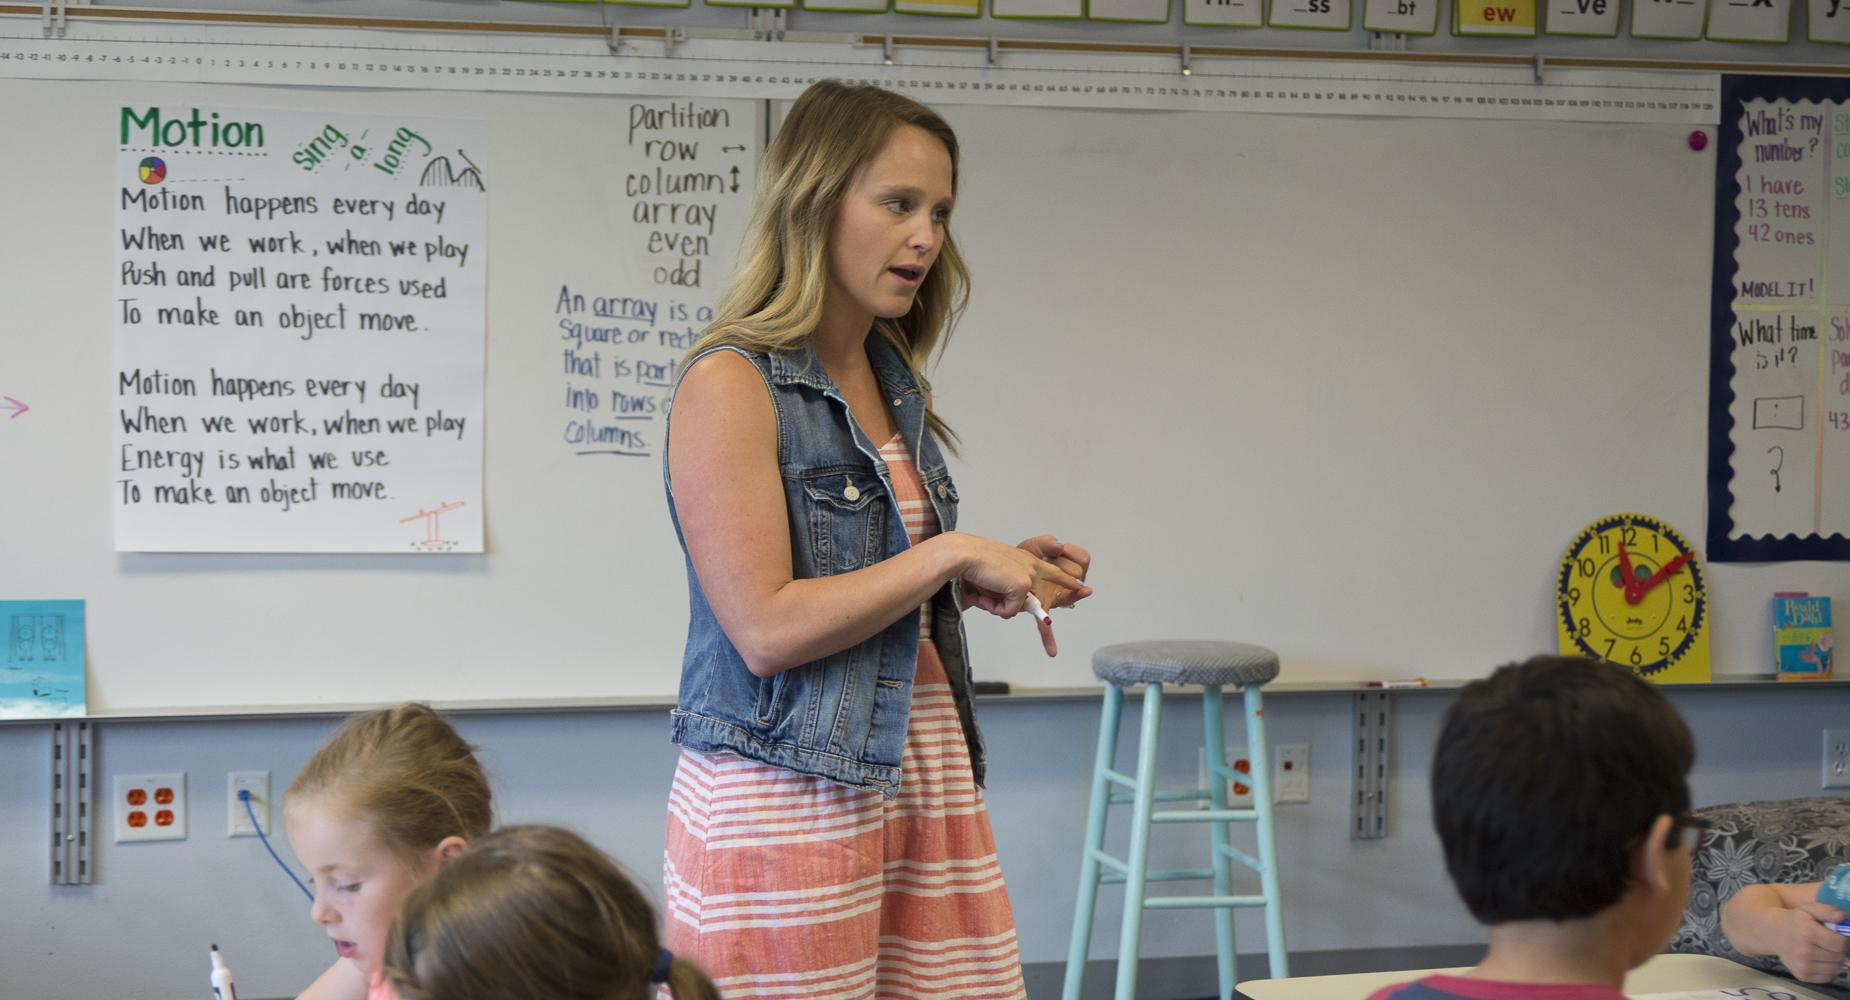 Teacher talks with kids from front of classroom